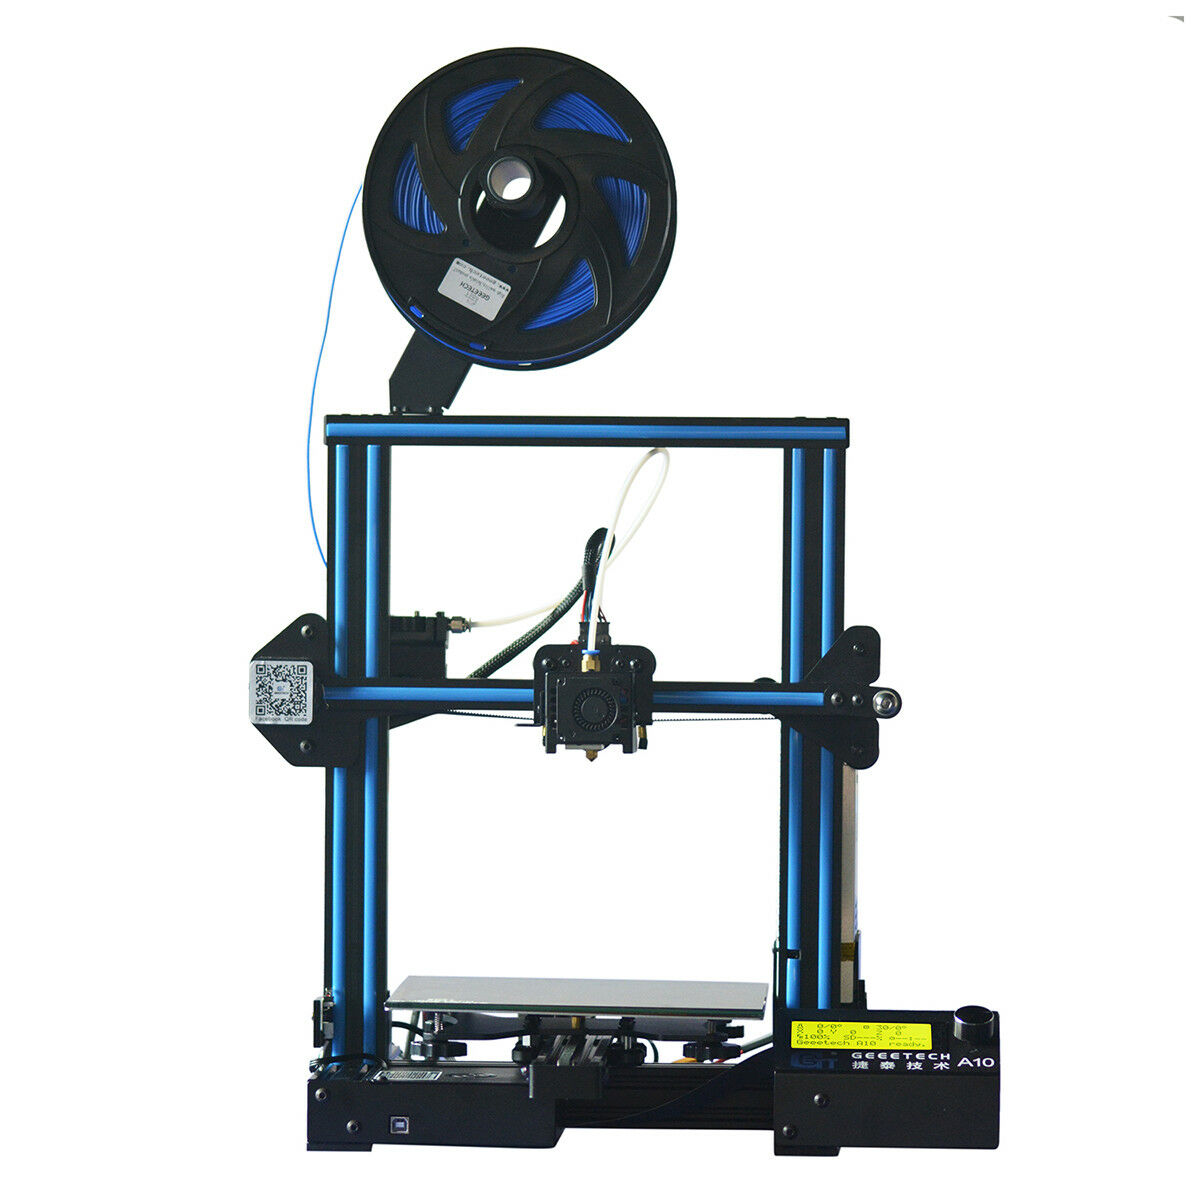 Geeetech A10 3D Printer Newest Version  Open Source GT2560 Easy Assembly in US a10 assembly easy Geeetech gt2560 newest printer source